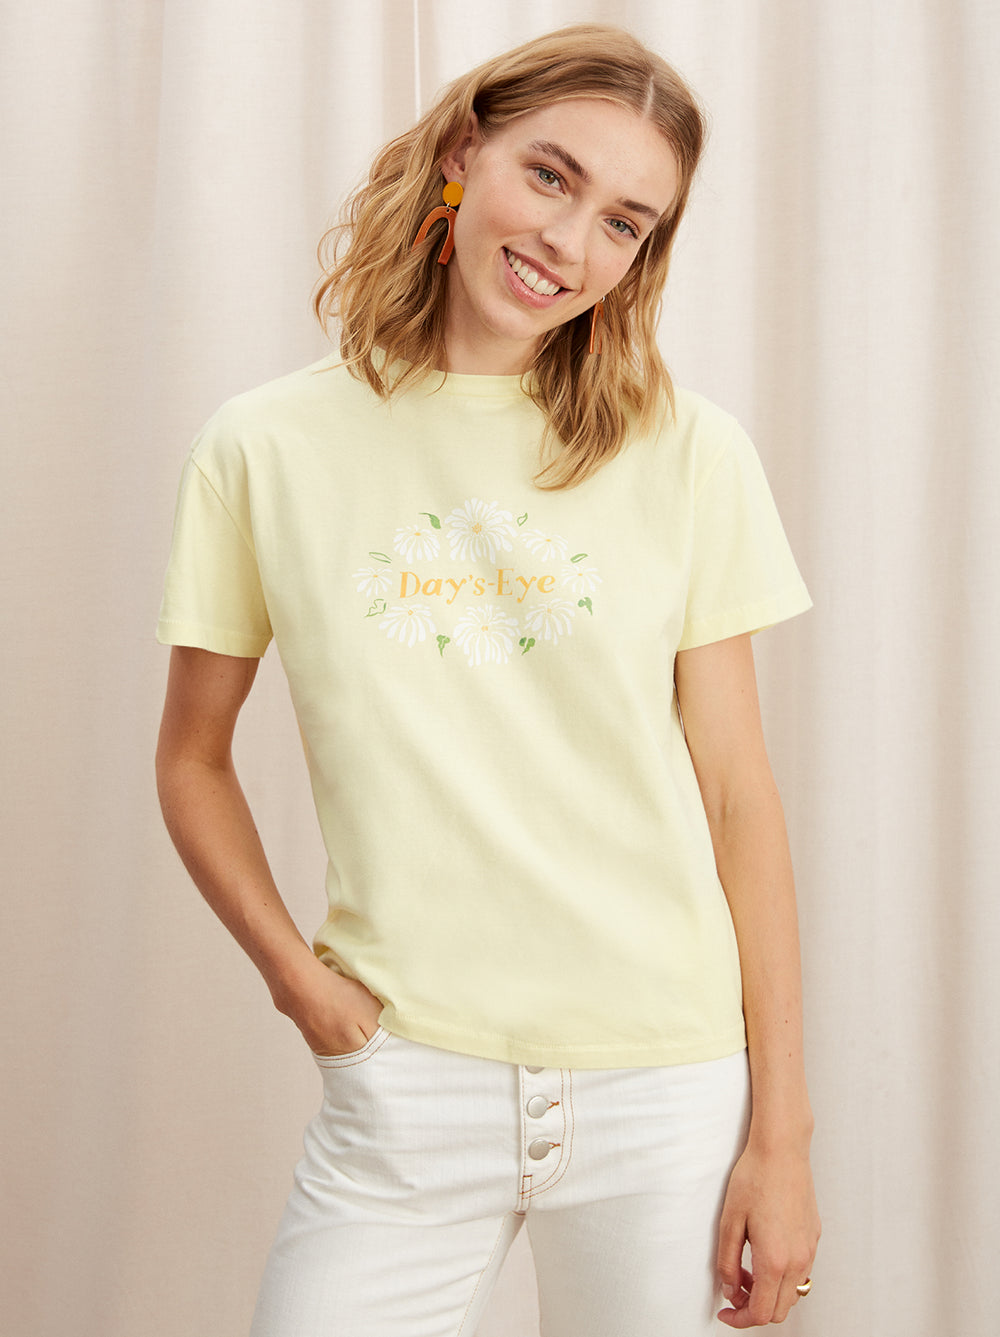 Days-Eye Yellow Cotton Printed T-shirt by KITRI Studio